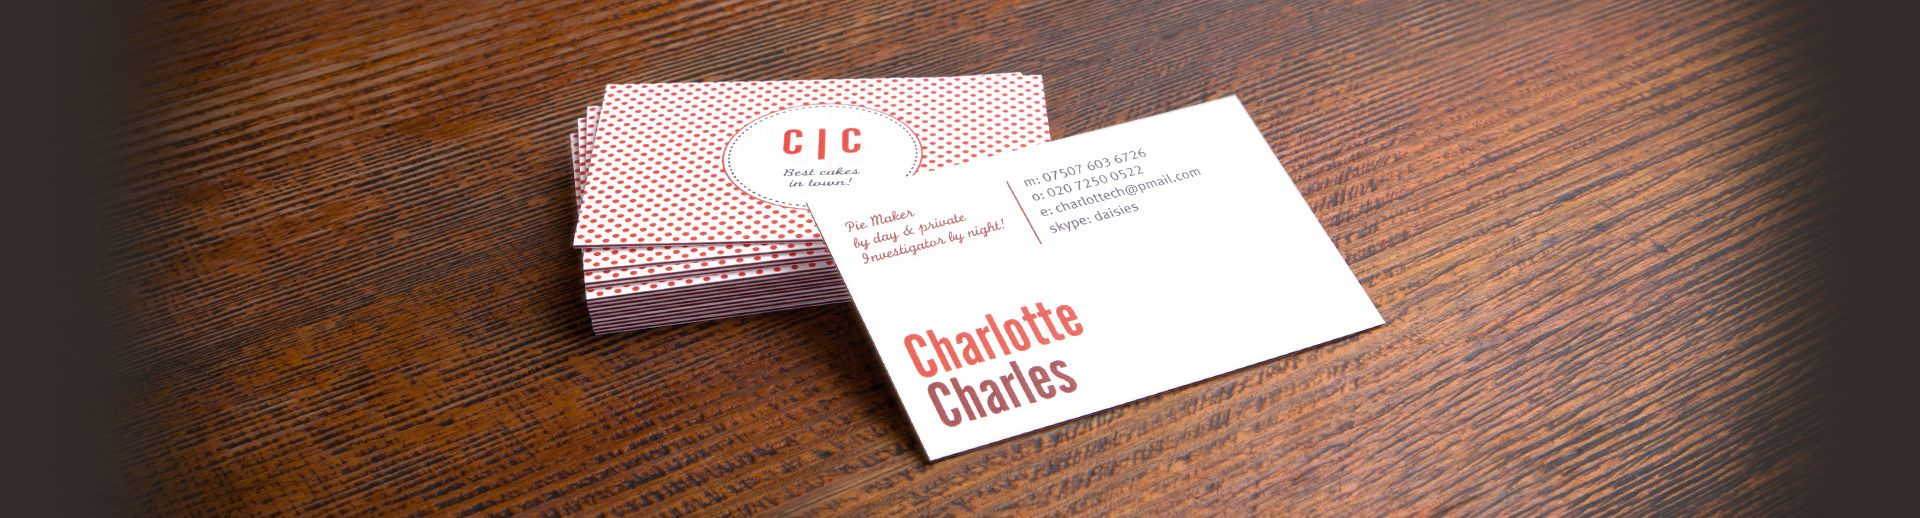 25 best △△ Cool business cards △△ images on Pinterest | Carte ...